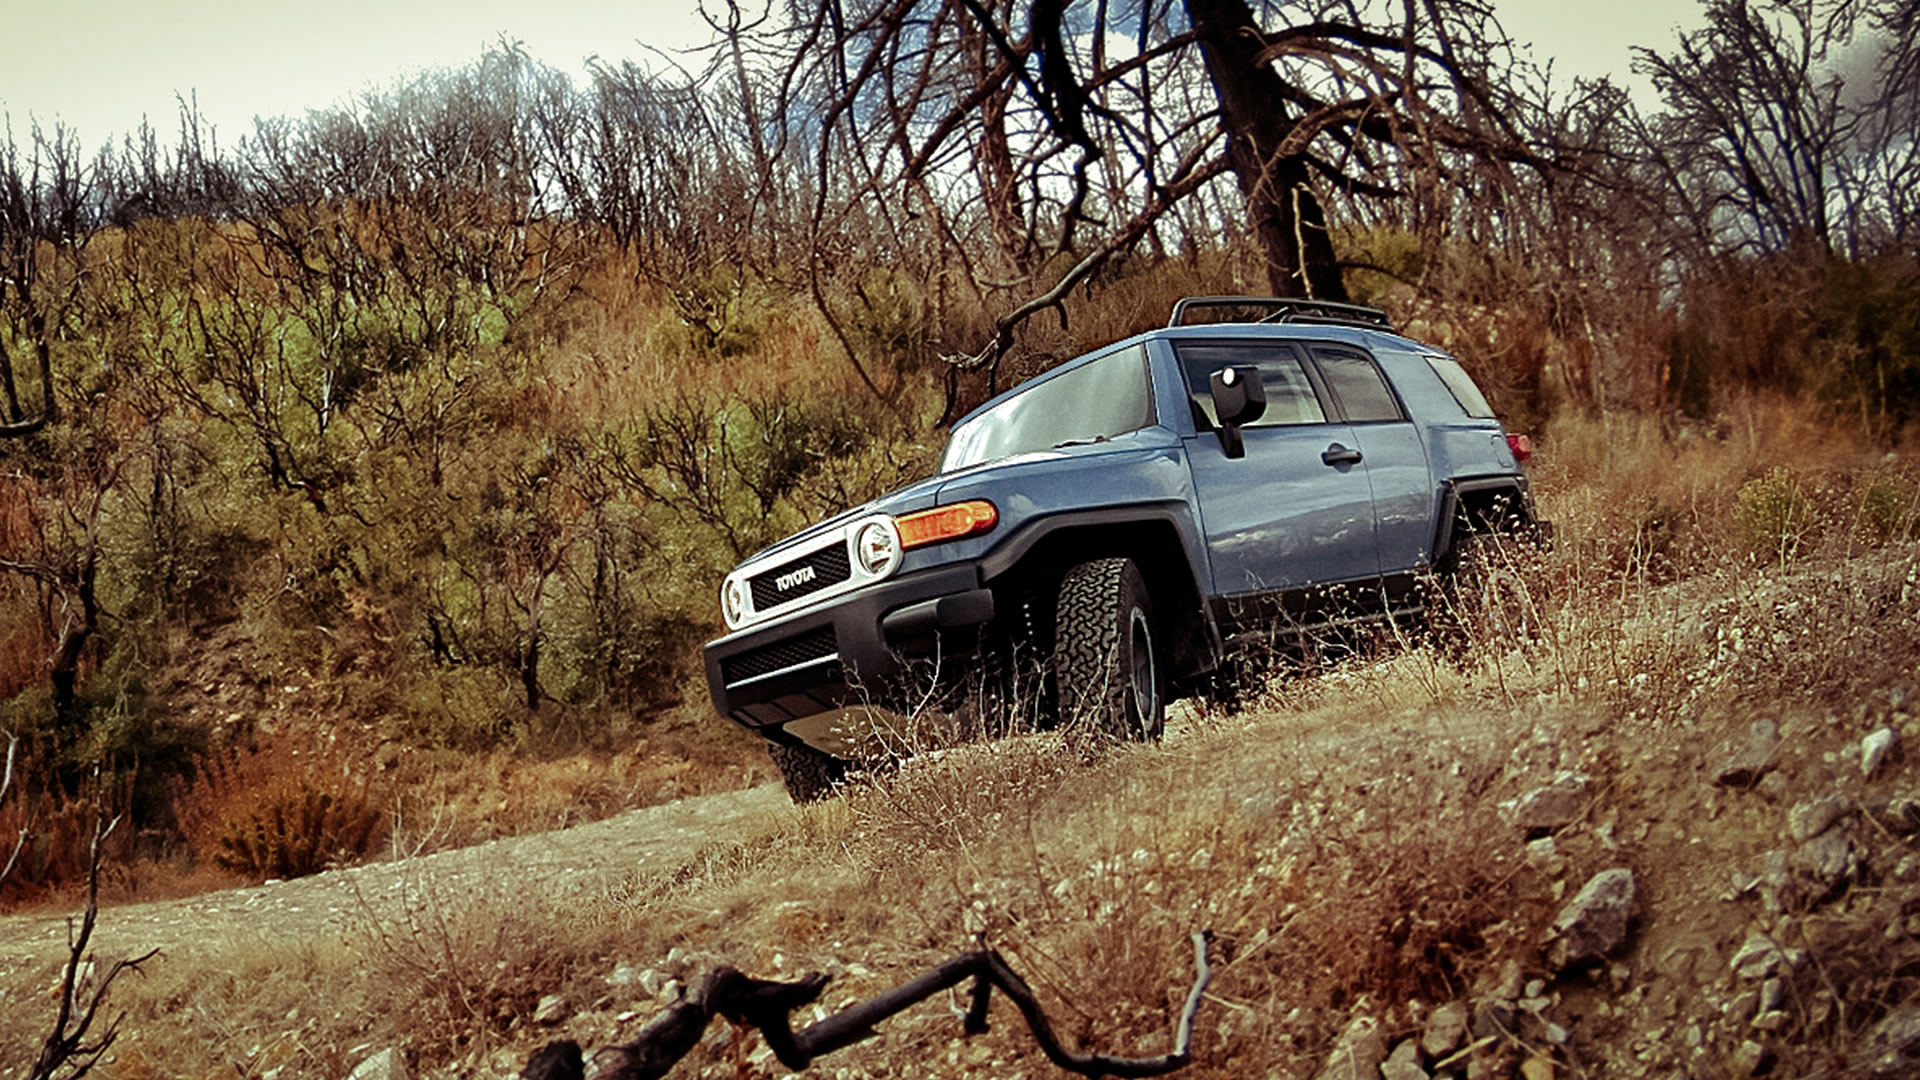 2014 Toyota Fj Cruiser Camping Accessories Fuel Filter Location